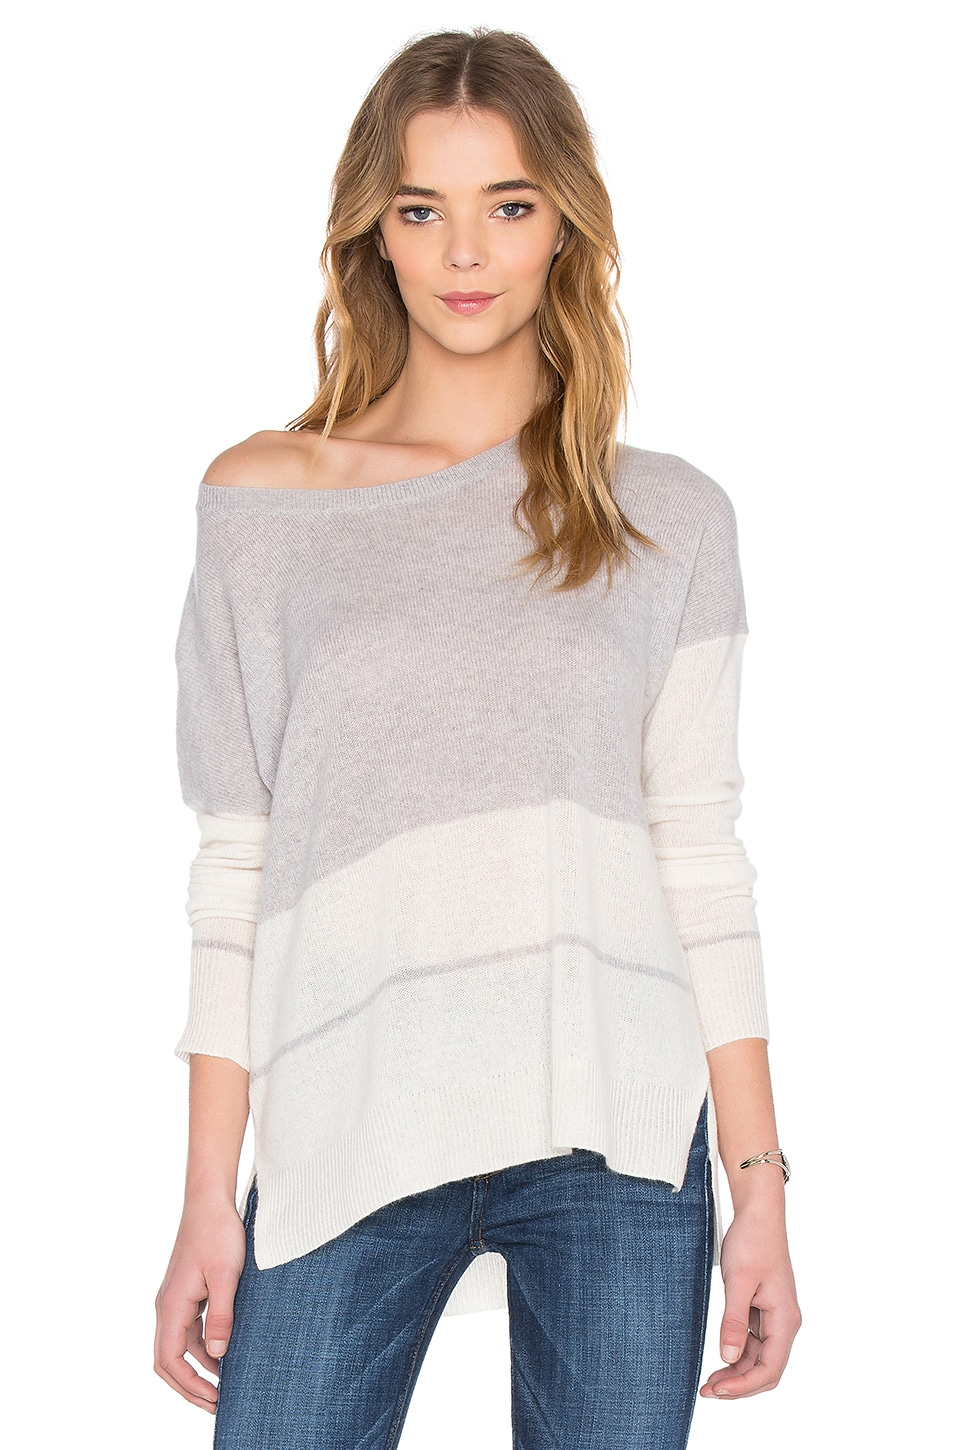 Reilly Stripe Sweater